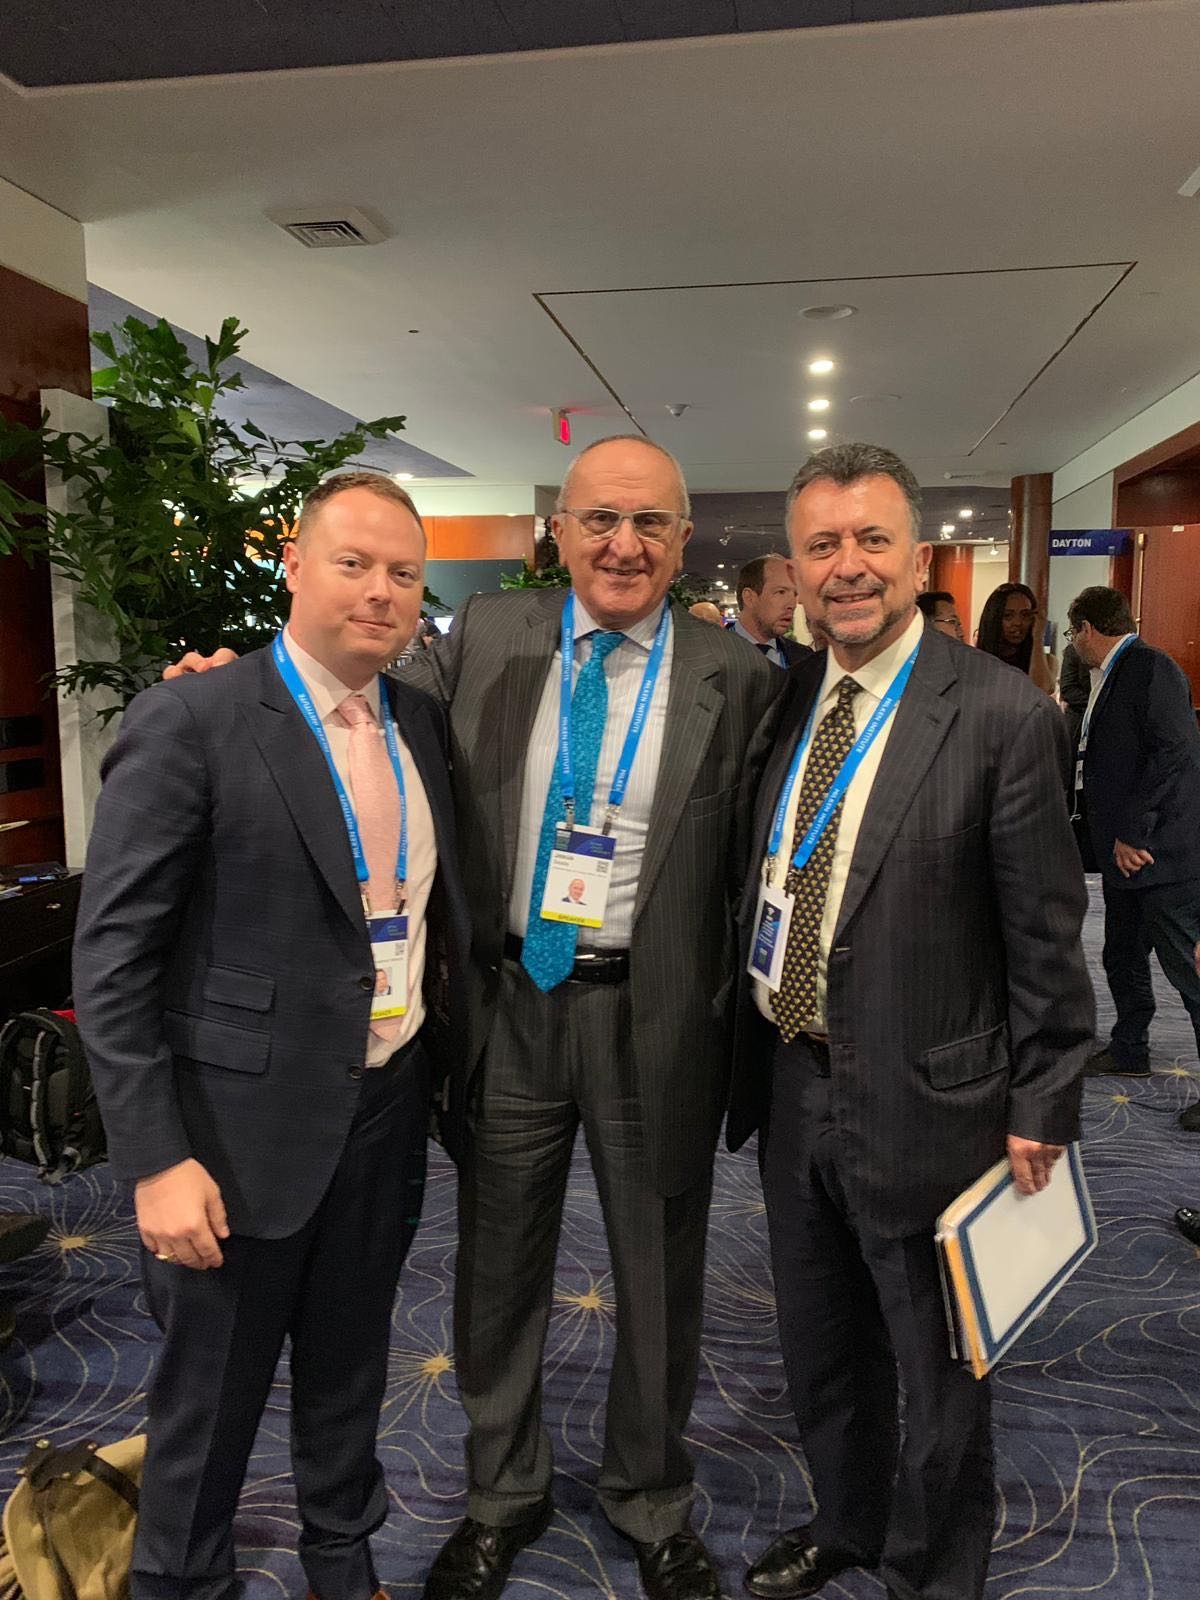 From left to right - John Kluge, Founder, Refugee Investment Network; Jesús Seade, Undersecretary for North America for the Mexican Ministry of Foreign Affairs; and Carlos García de Alba, Consul General of Mexico in Los   Angeles.